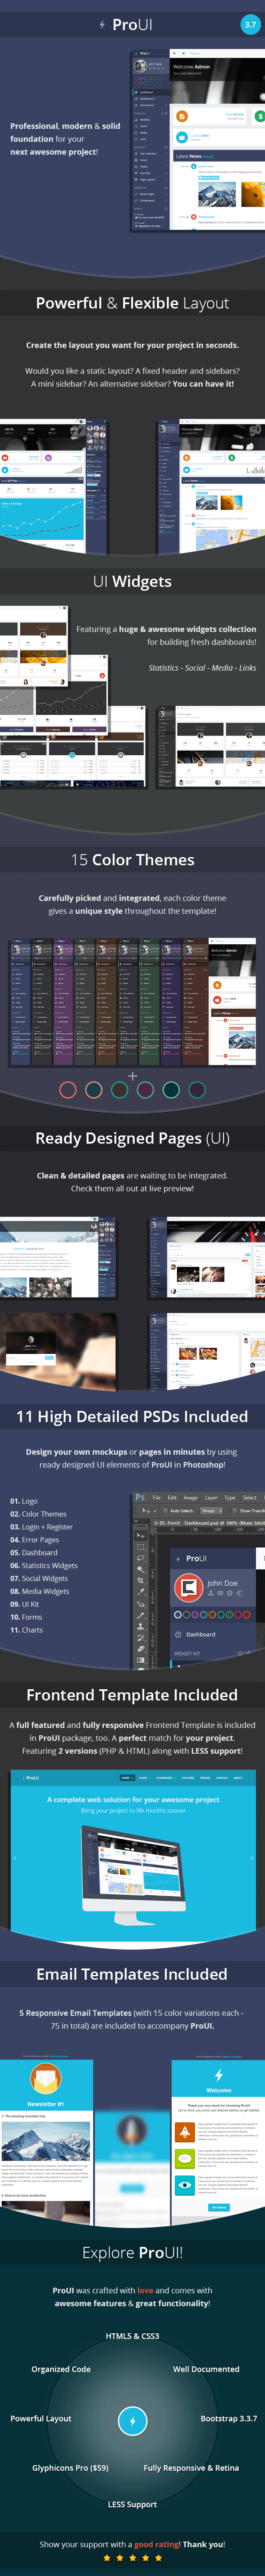 ProUI - Responsive Bootstrap Admin Template   Template